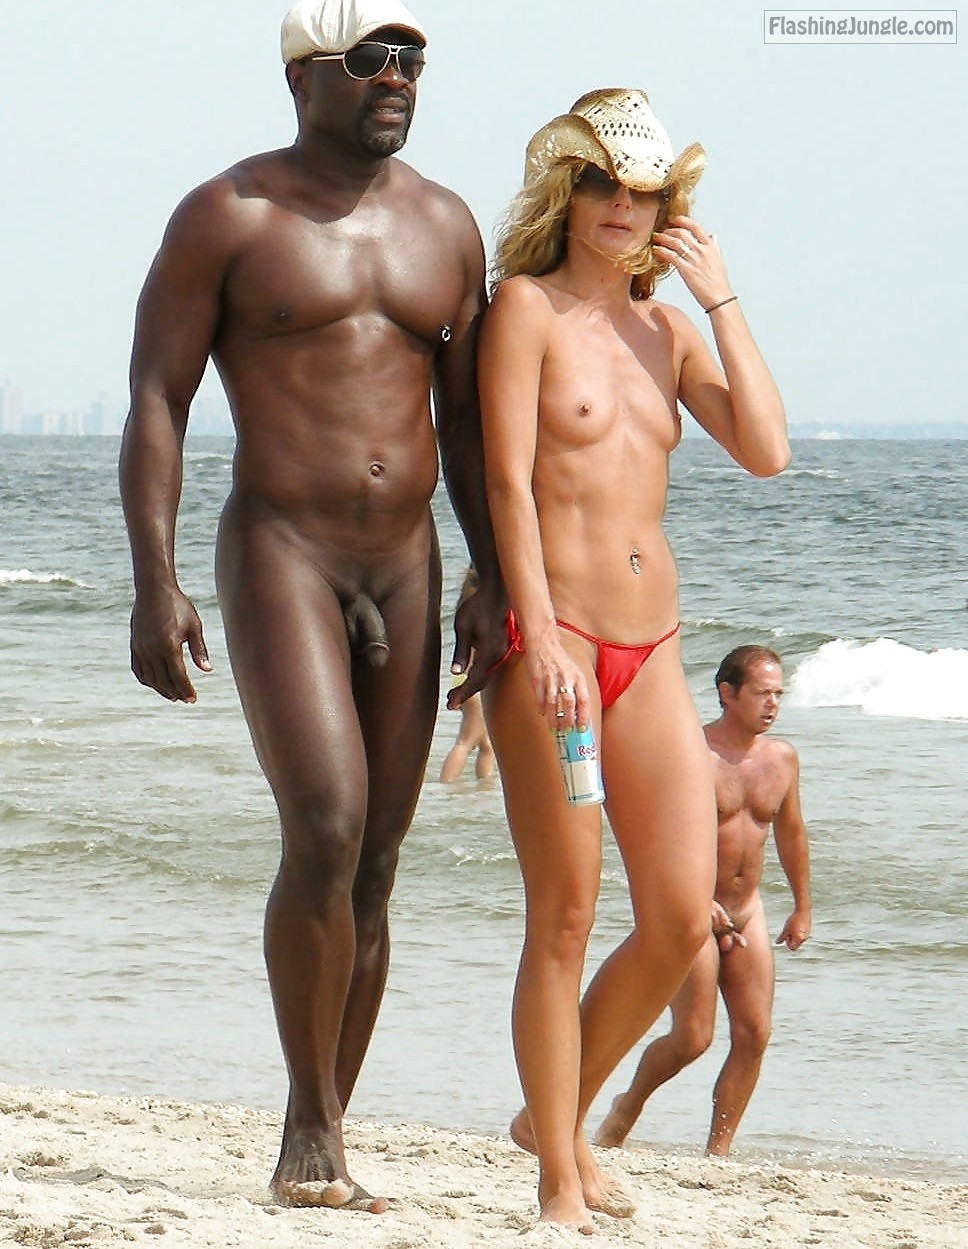 Naked Black Guy And Topless Blonde Nude Beach Pics, Voyeur -1530